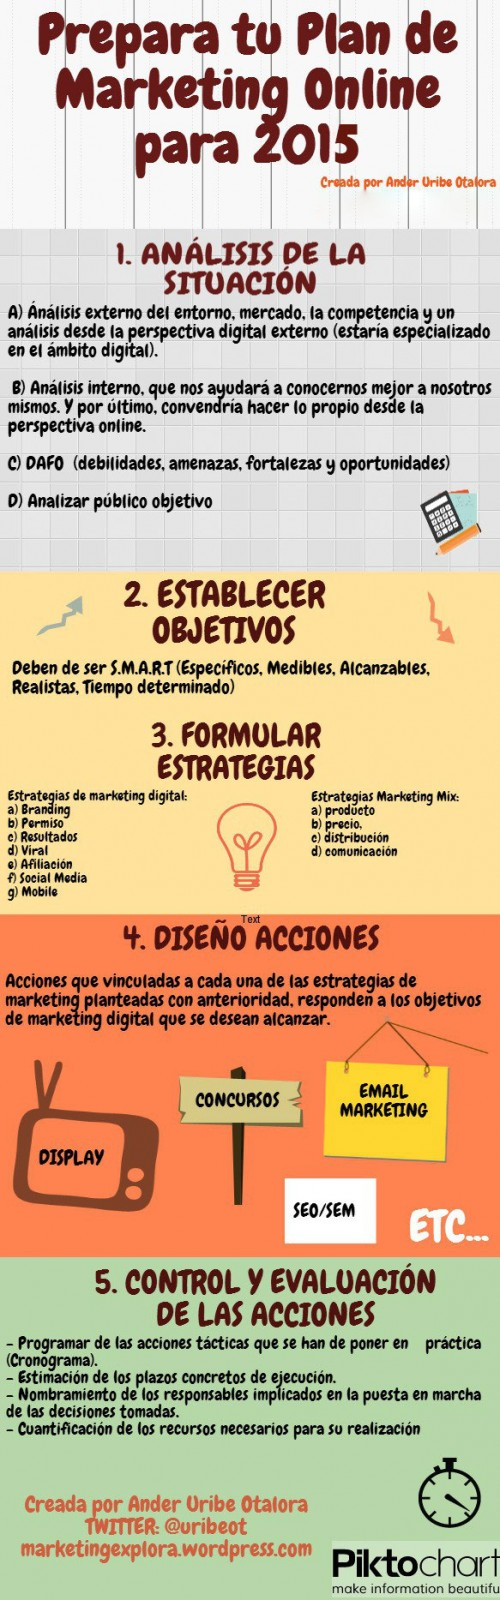 infografia_como_elaborar_tu_plan_de_marketing_online